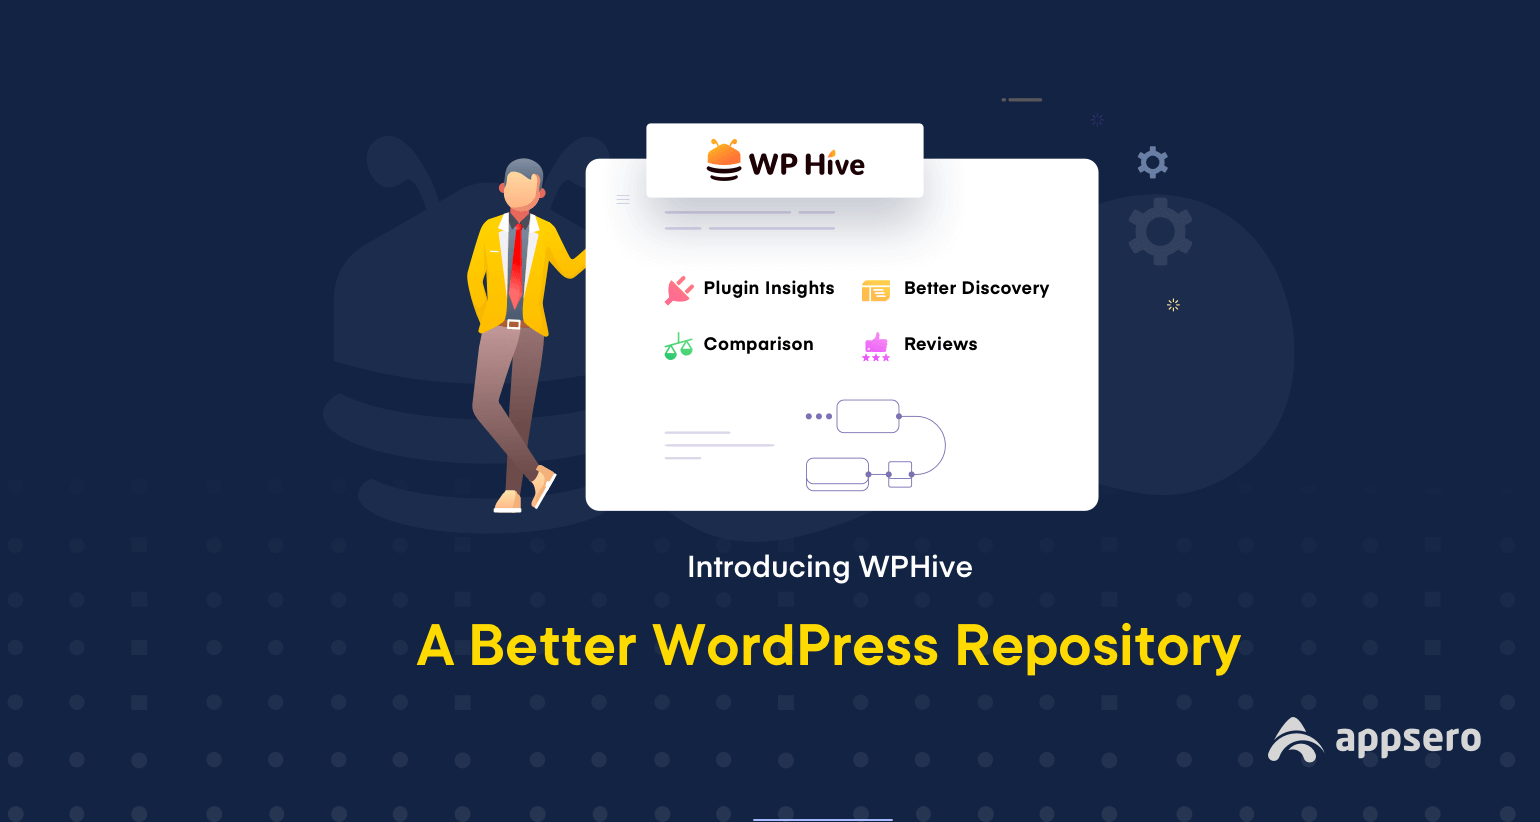 weDevs Introducing WP Hive: A Better WordPress Repository in The Town